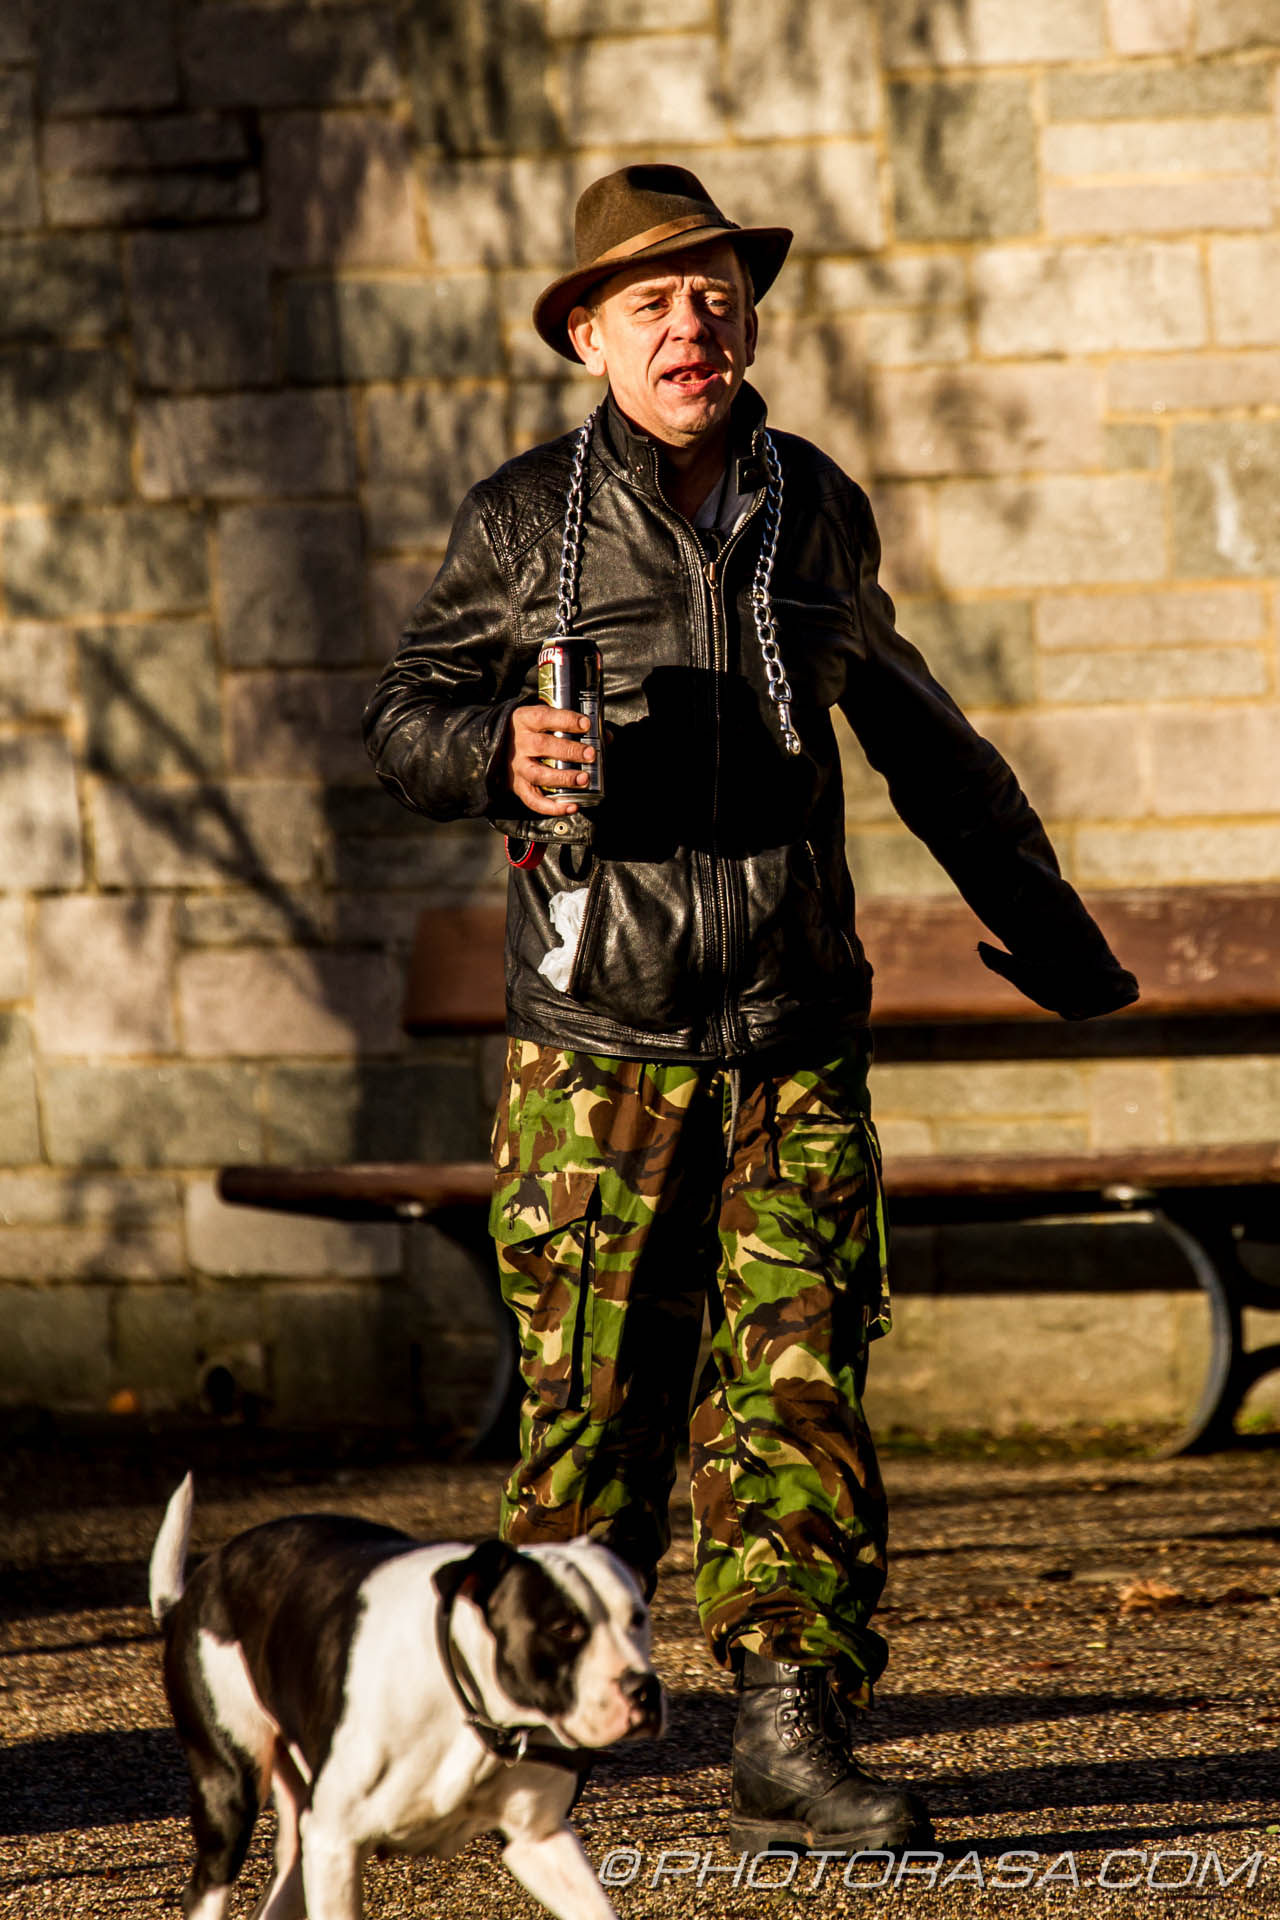 http://photorasa.com/classic-drunken-swagger/drunkard-walking-his-bull-terrier-dog/